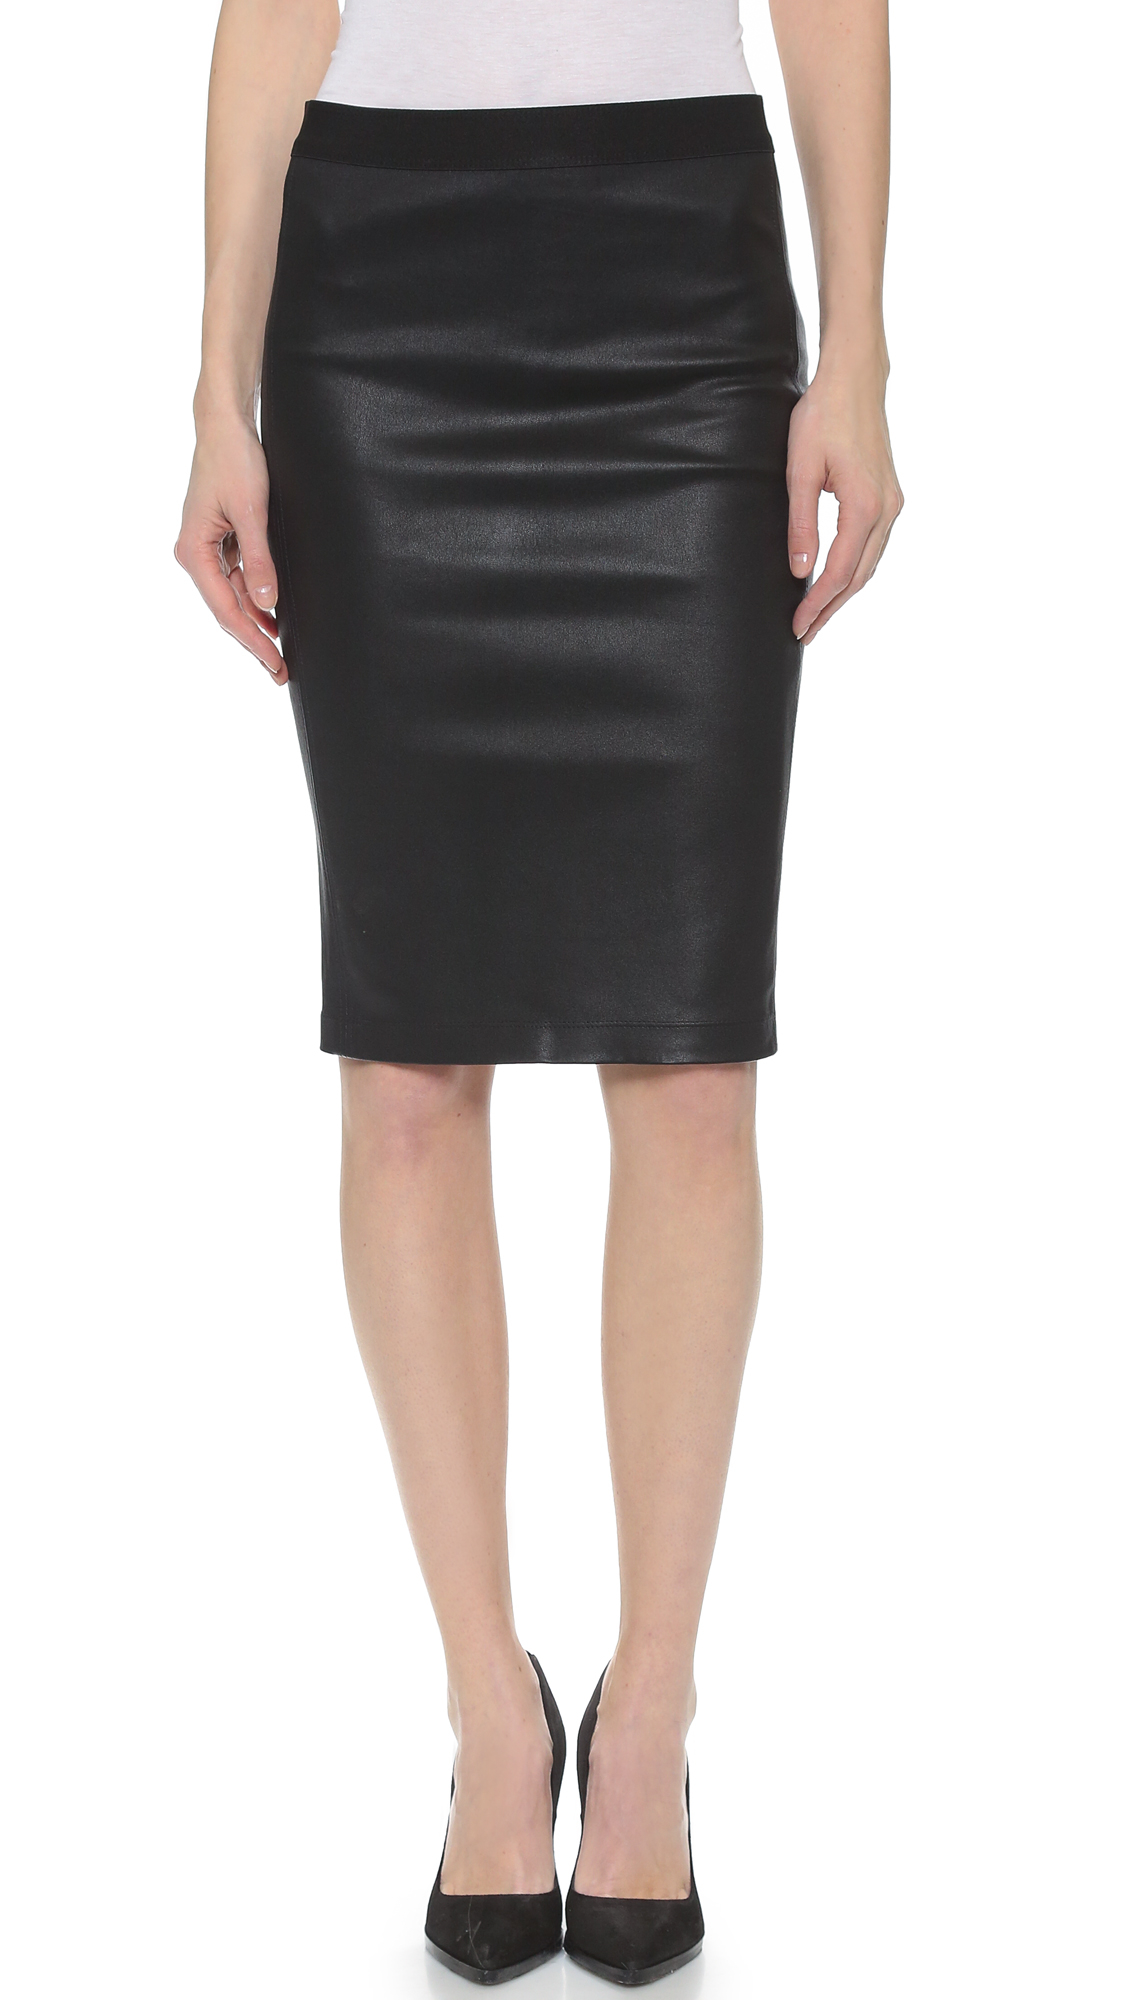 Helmut lang Stretch Leather Pencil Skirt - Black in Black | Lyst